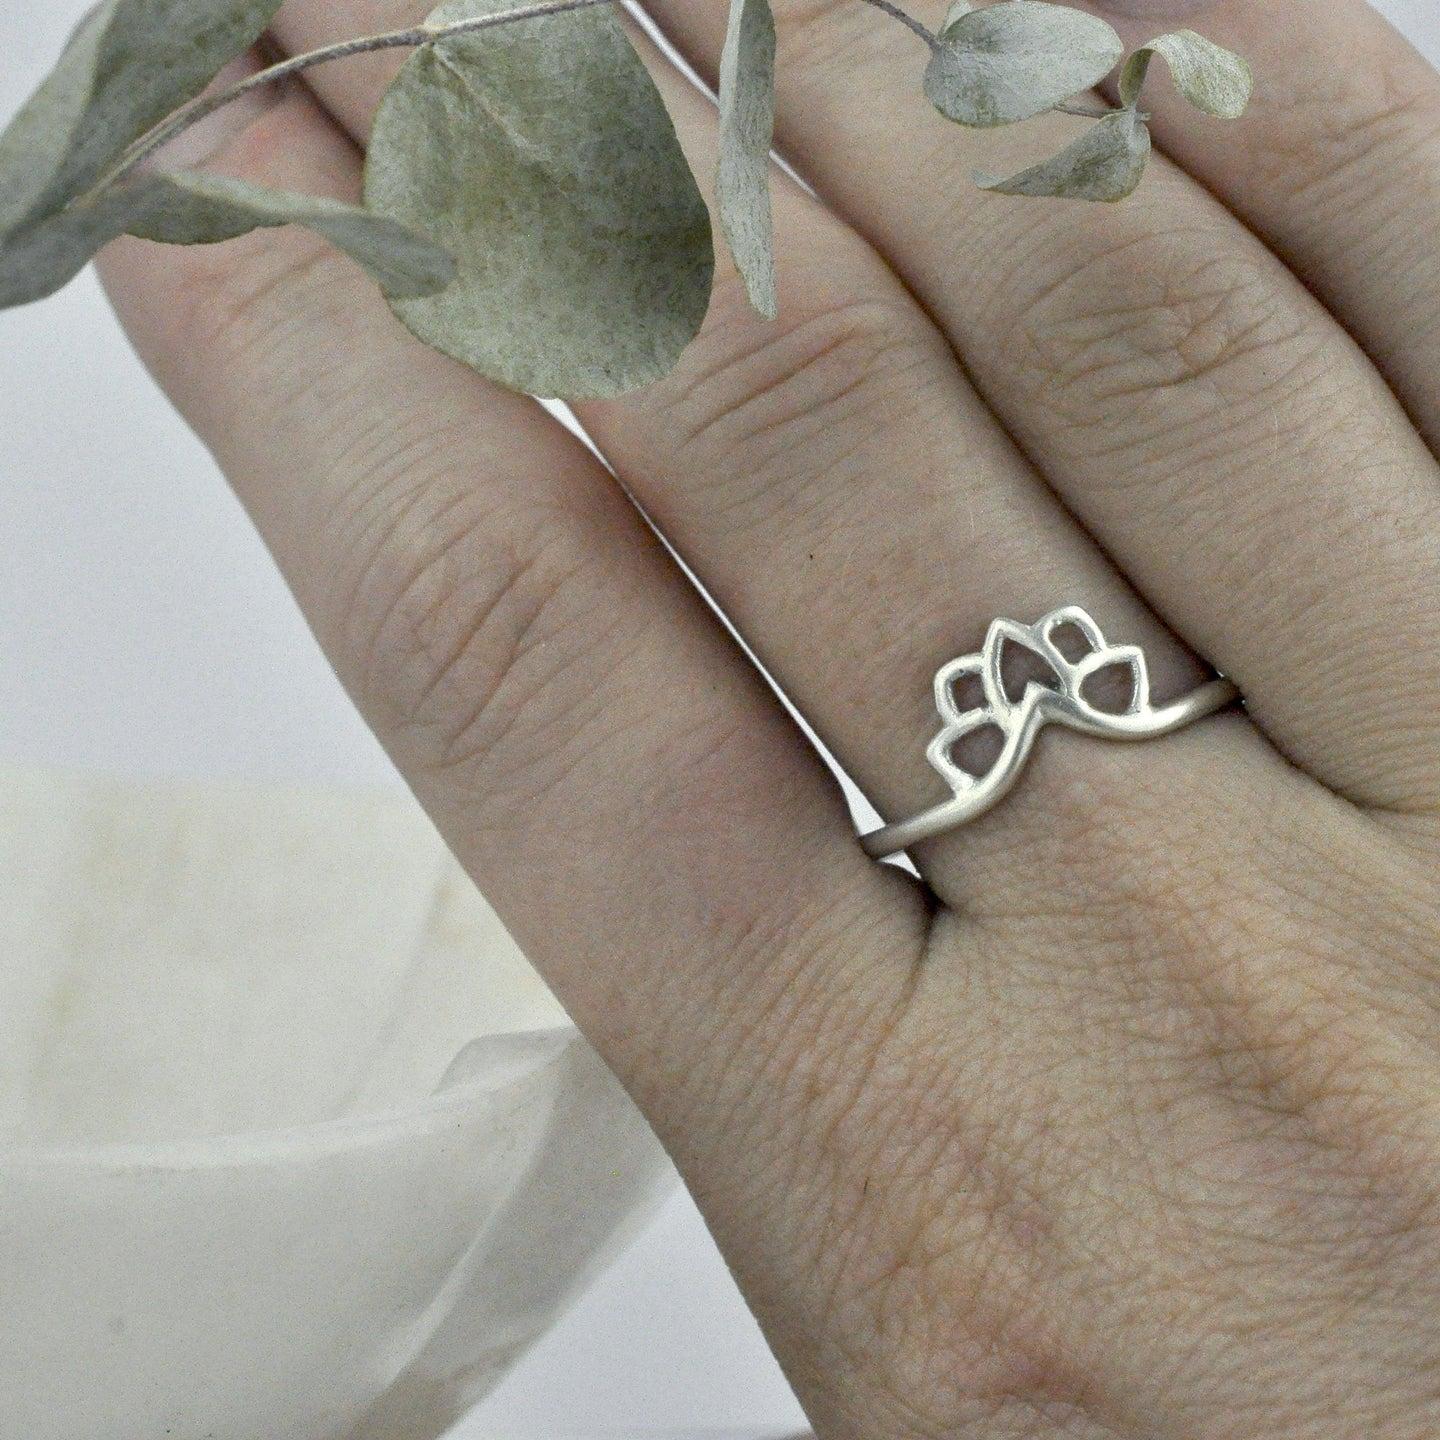 Silver wishbone curved ring.